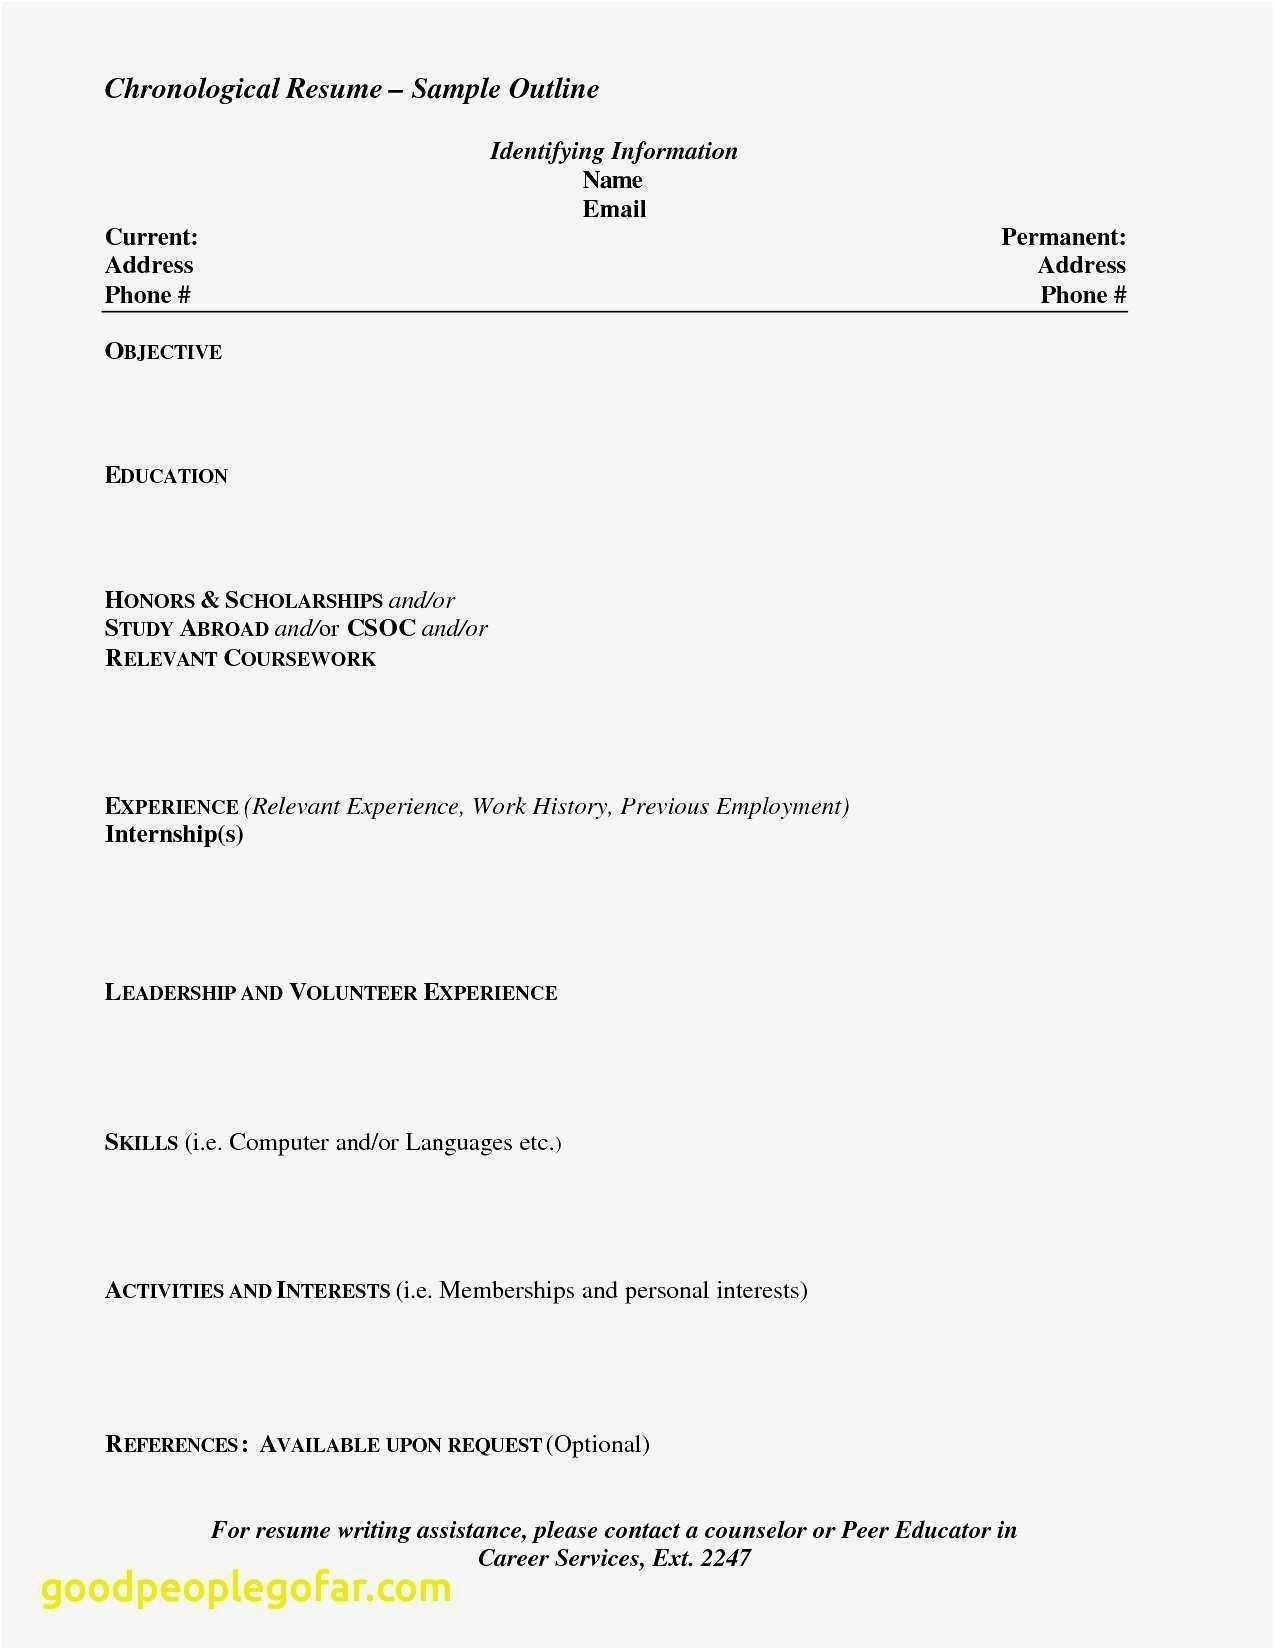 Collaborate Synonym for Resume - 22 Fresh Definition Resume